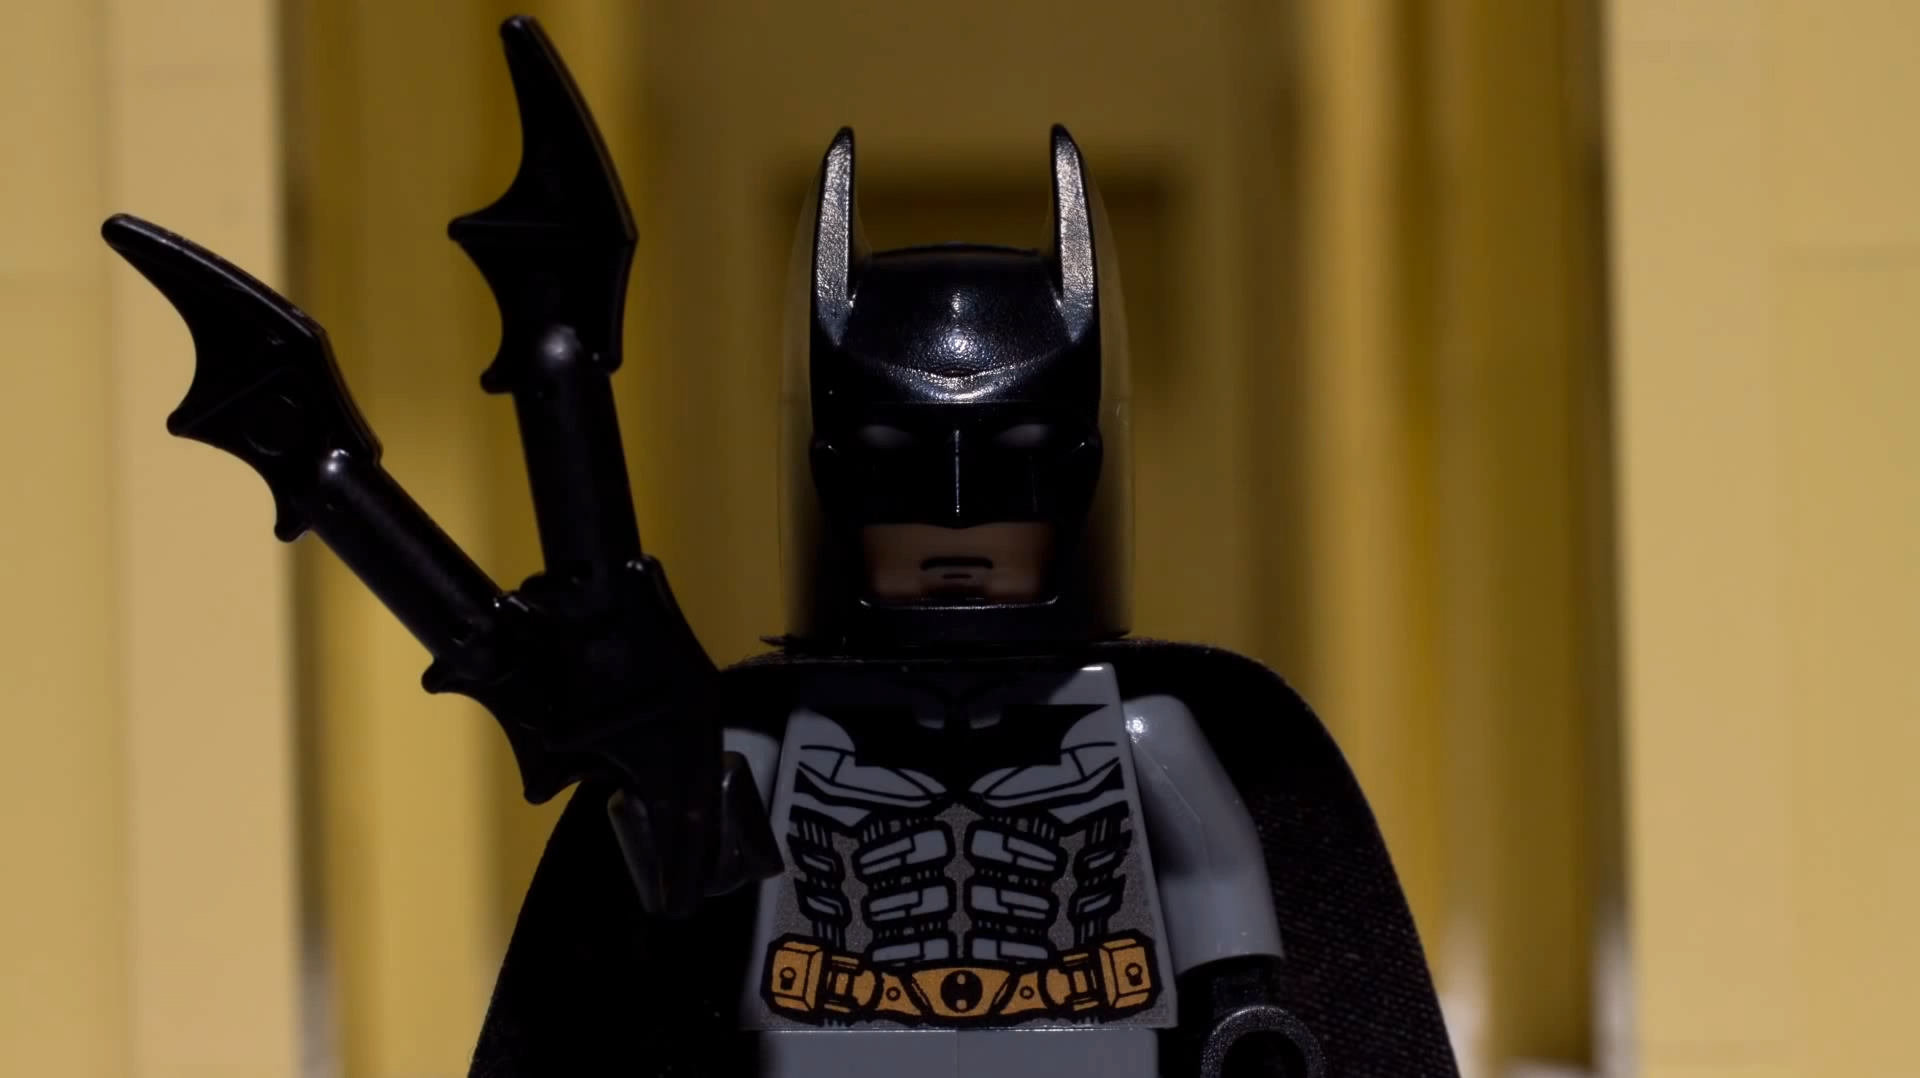 lego-batman-vs-lego-superman-really-shows-how-boring-this-fight-could-be.jpg